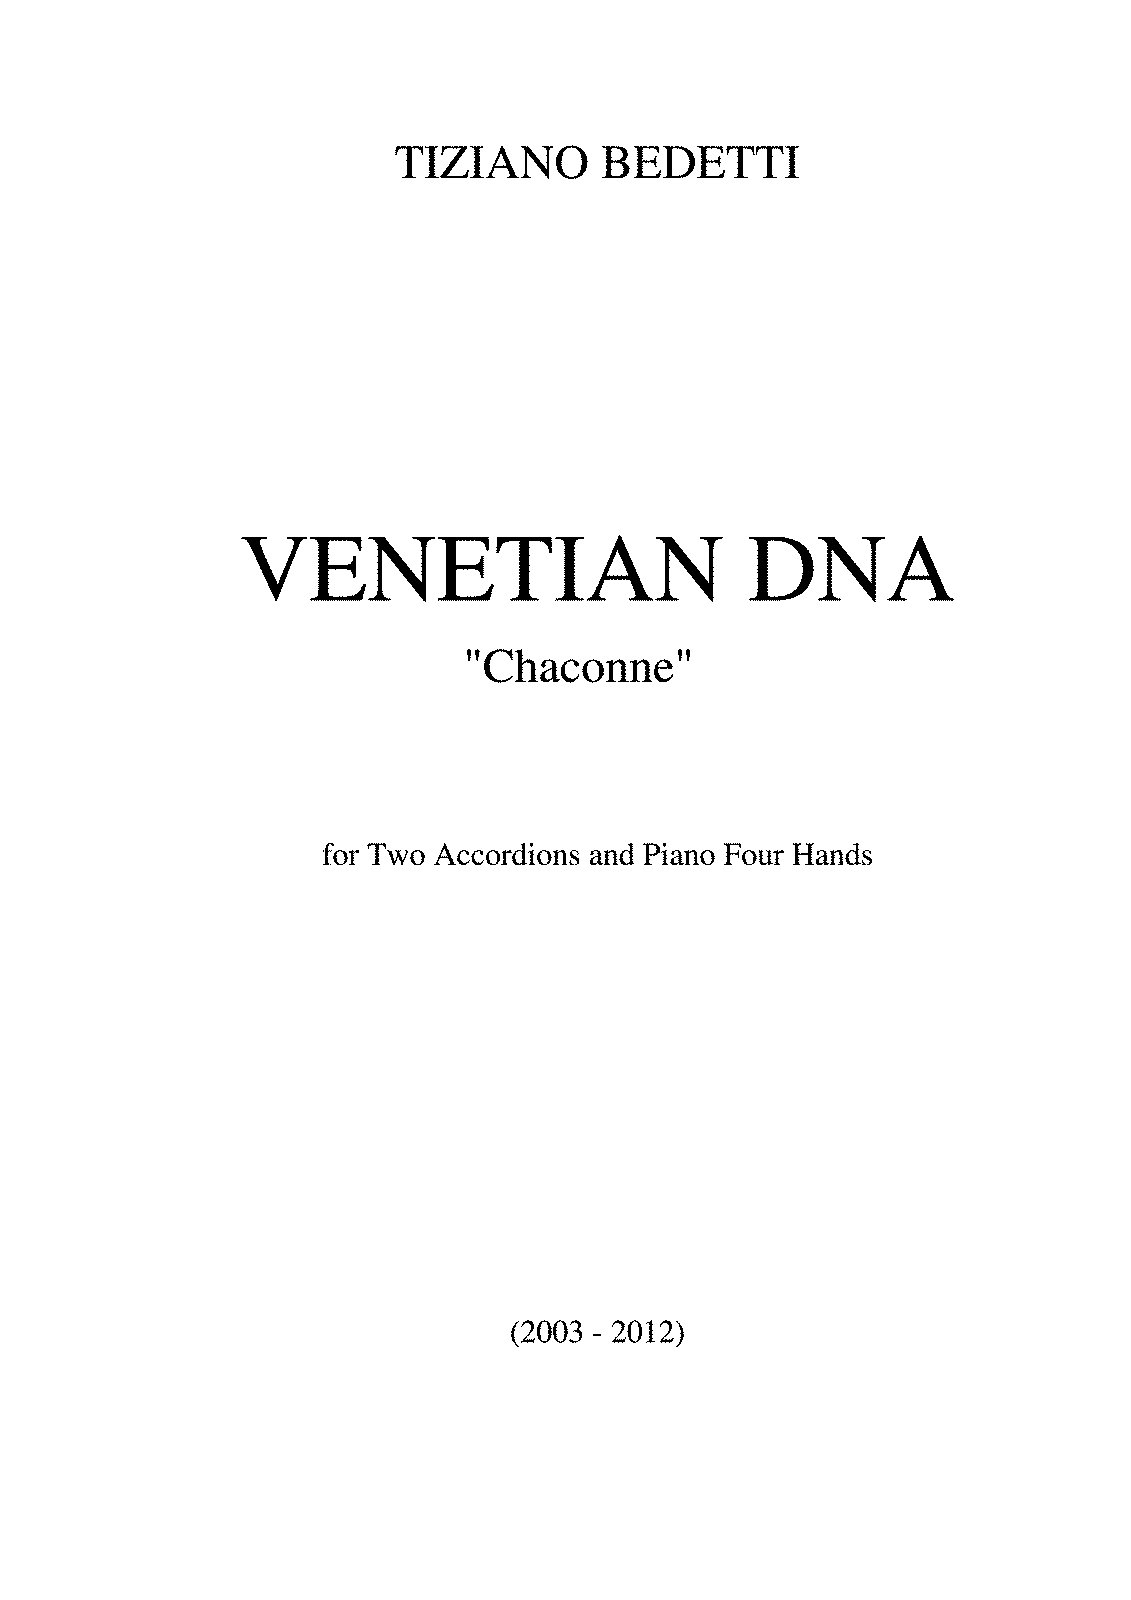 PMLP207566-Venetian DNA for Two Accordions and Piano Four Hands.pdf